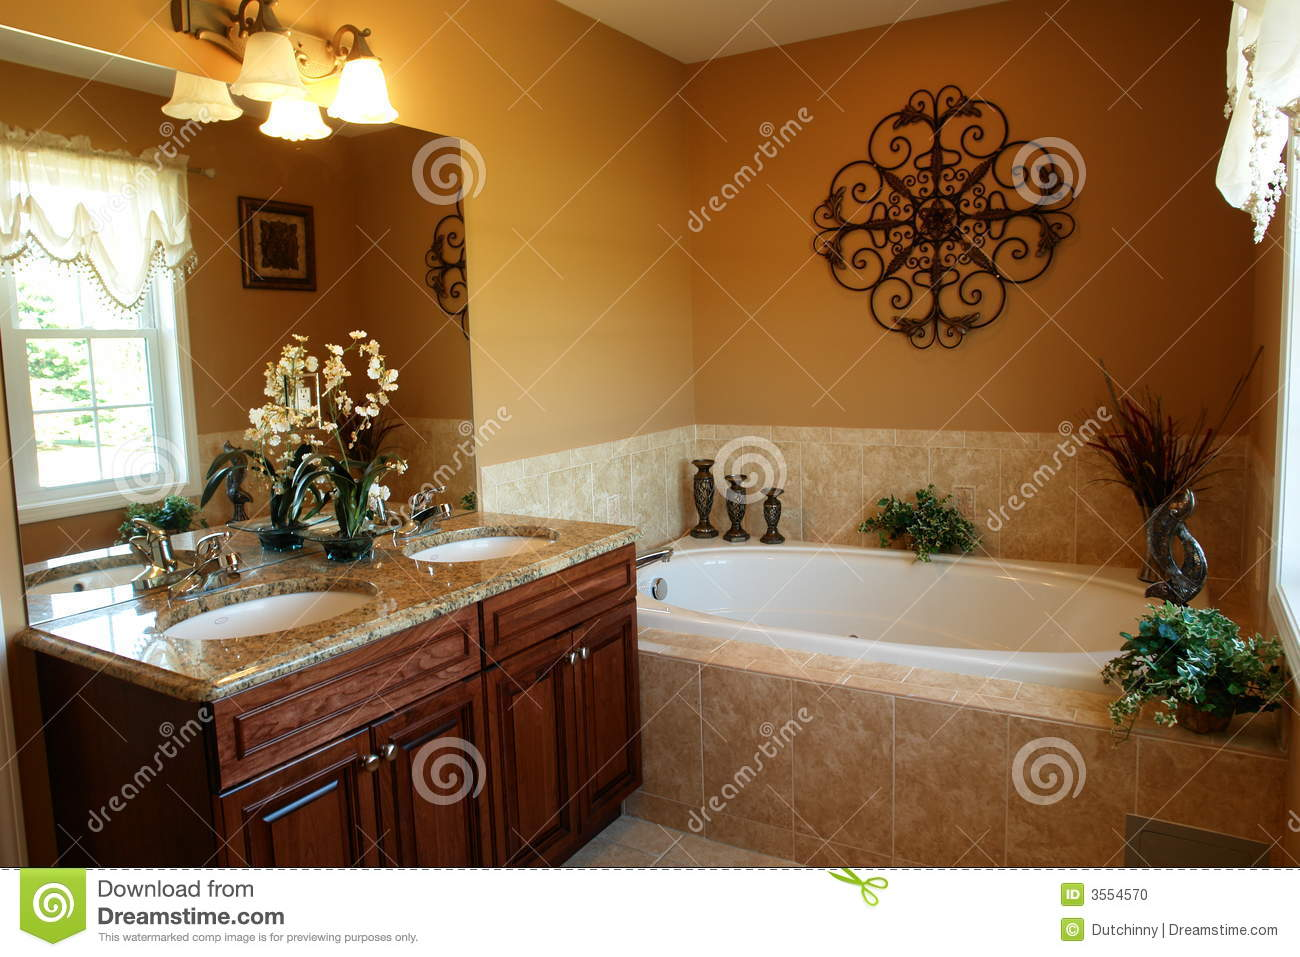 Baños Con Jacuzzi Decoracion:Luxury Bathrooms with Jacuzzi